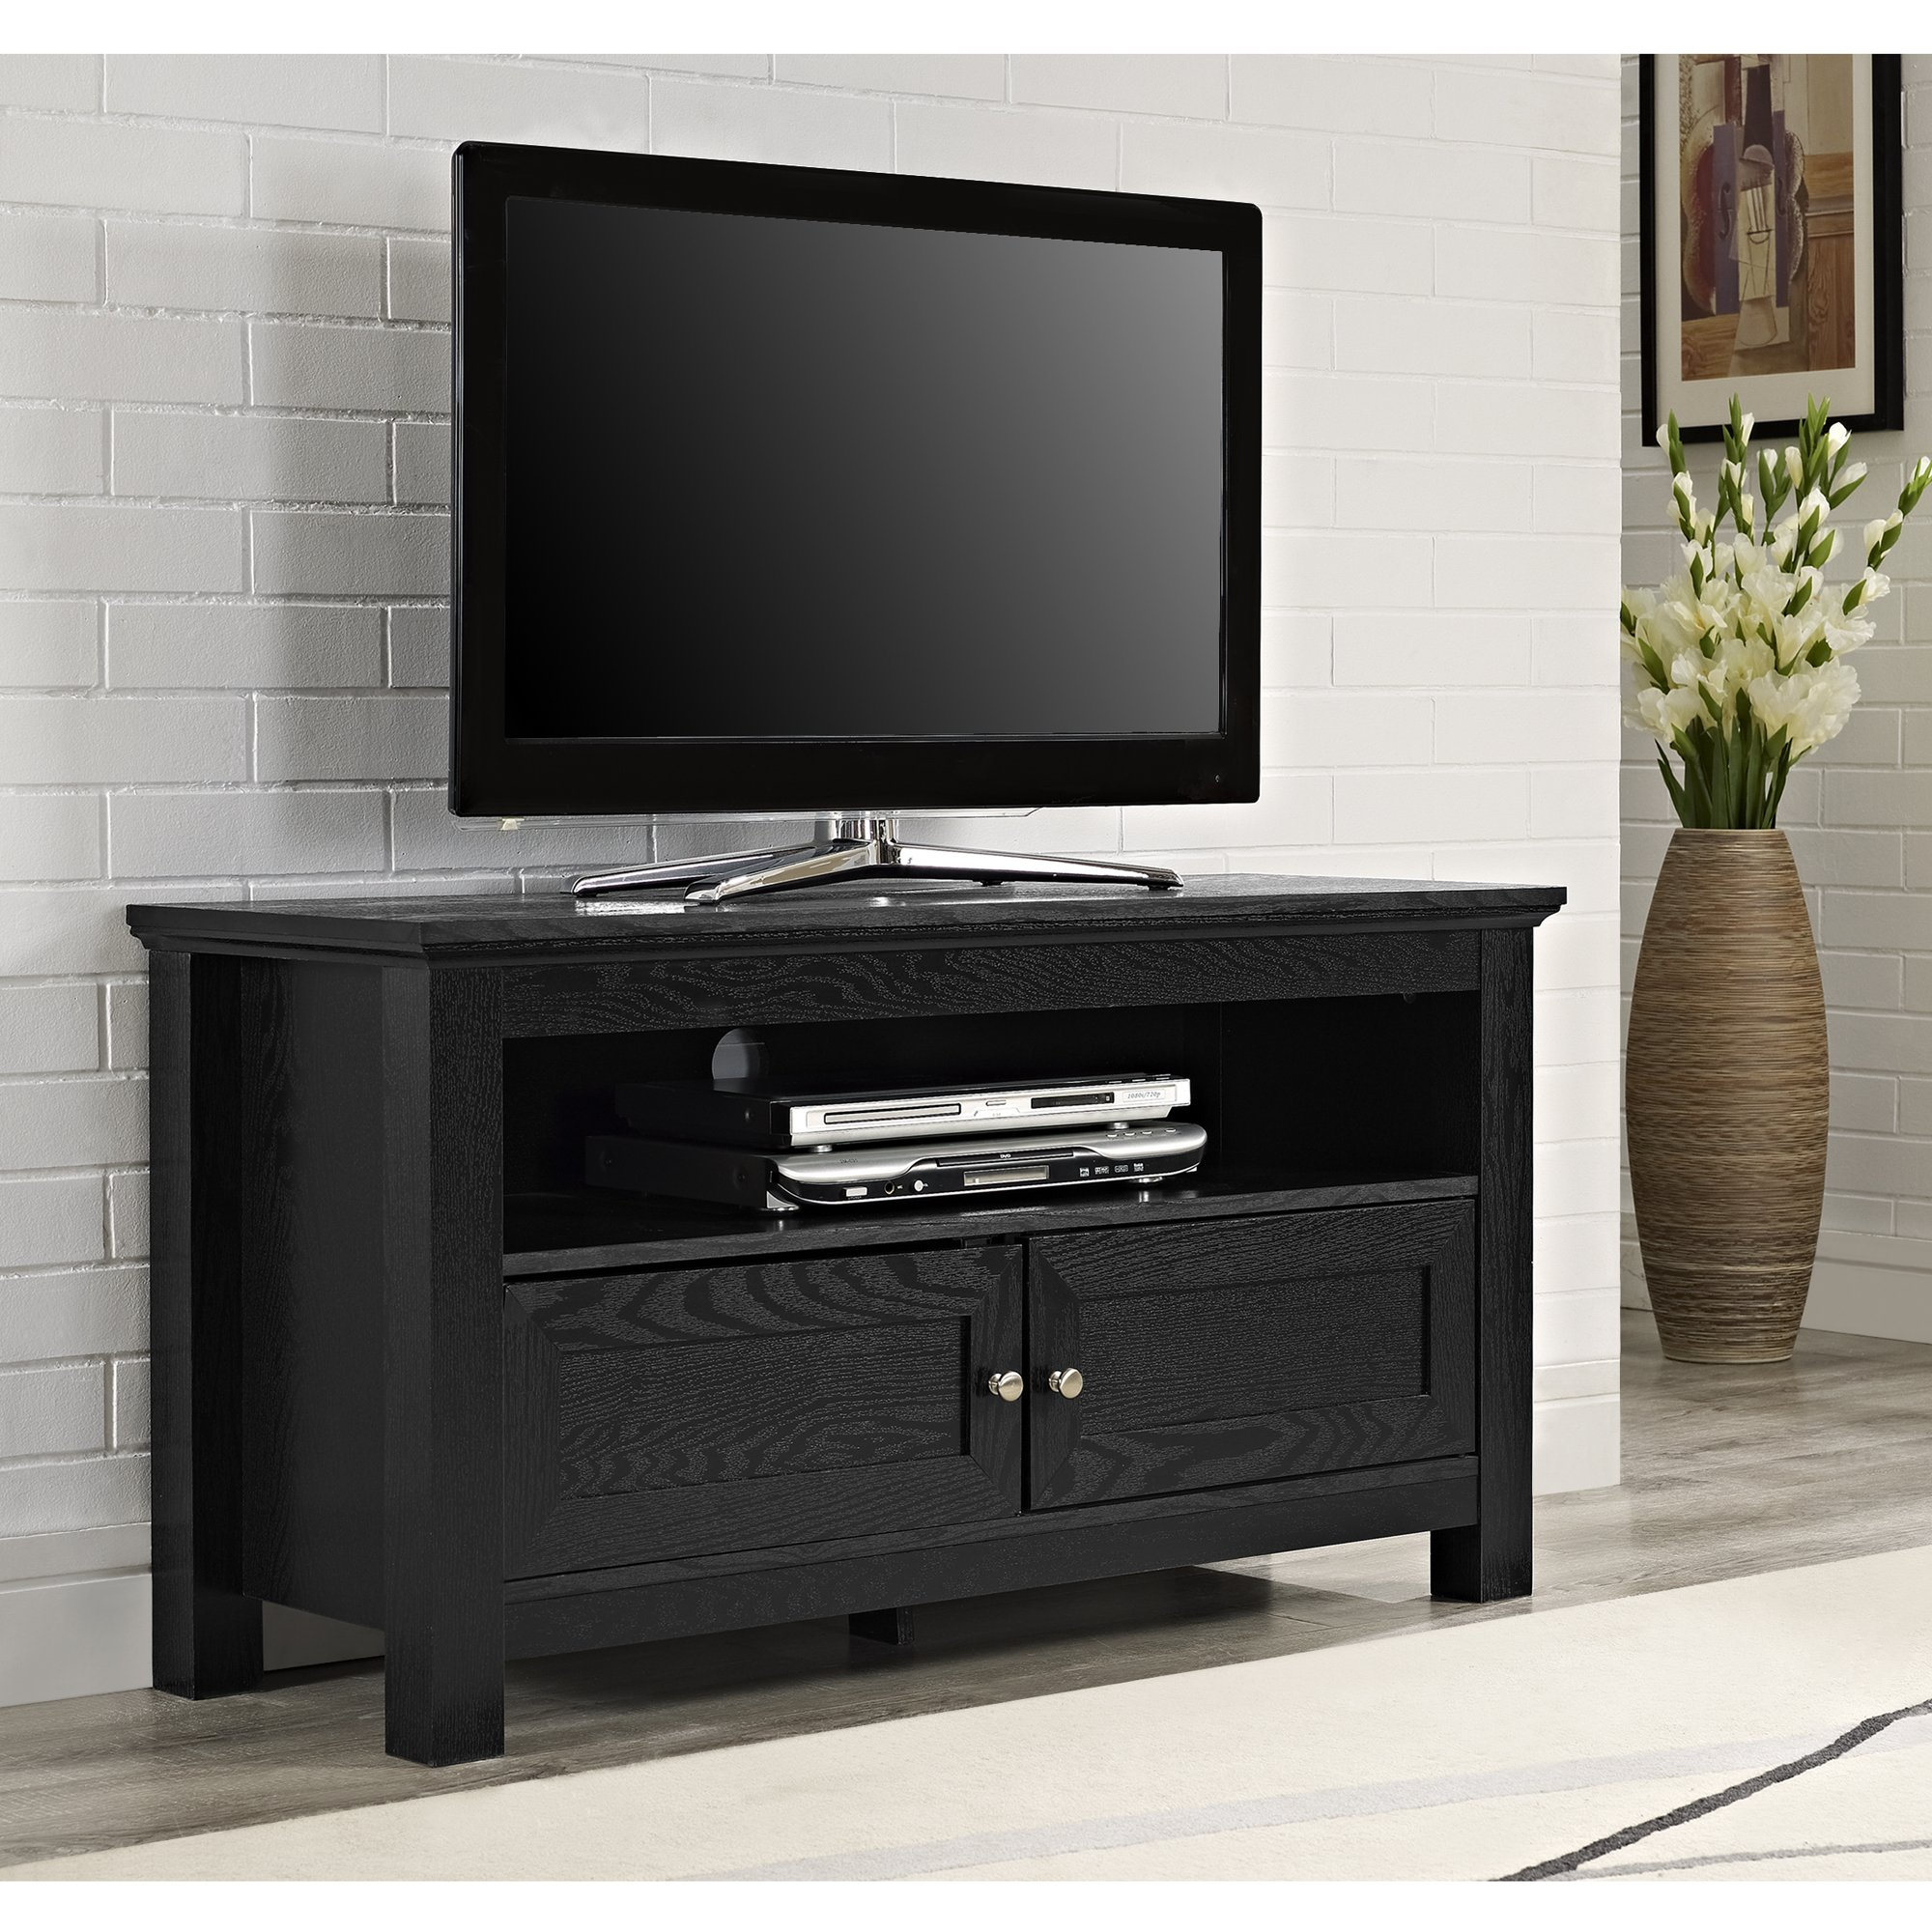 Walker Edison 44 inches Cortez TV Stand Console, Black